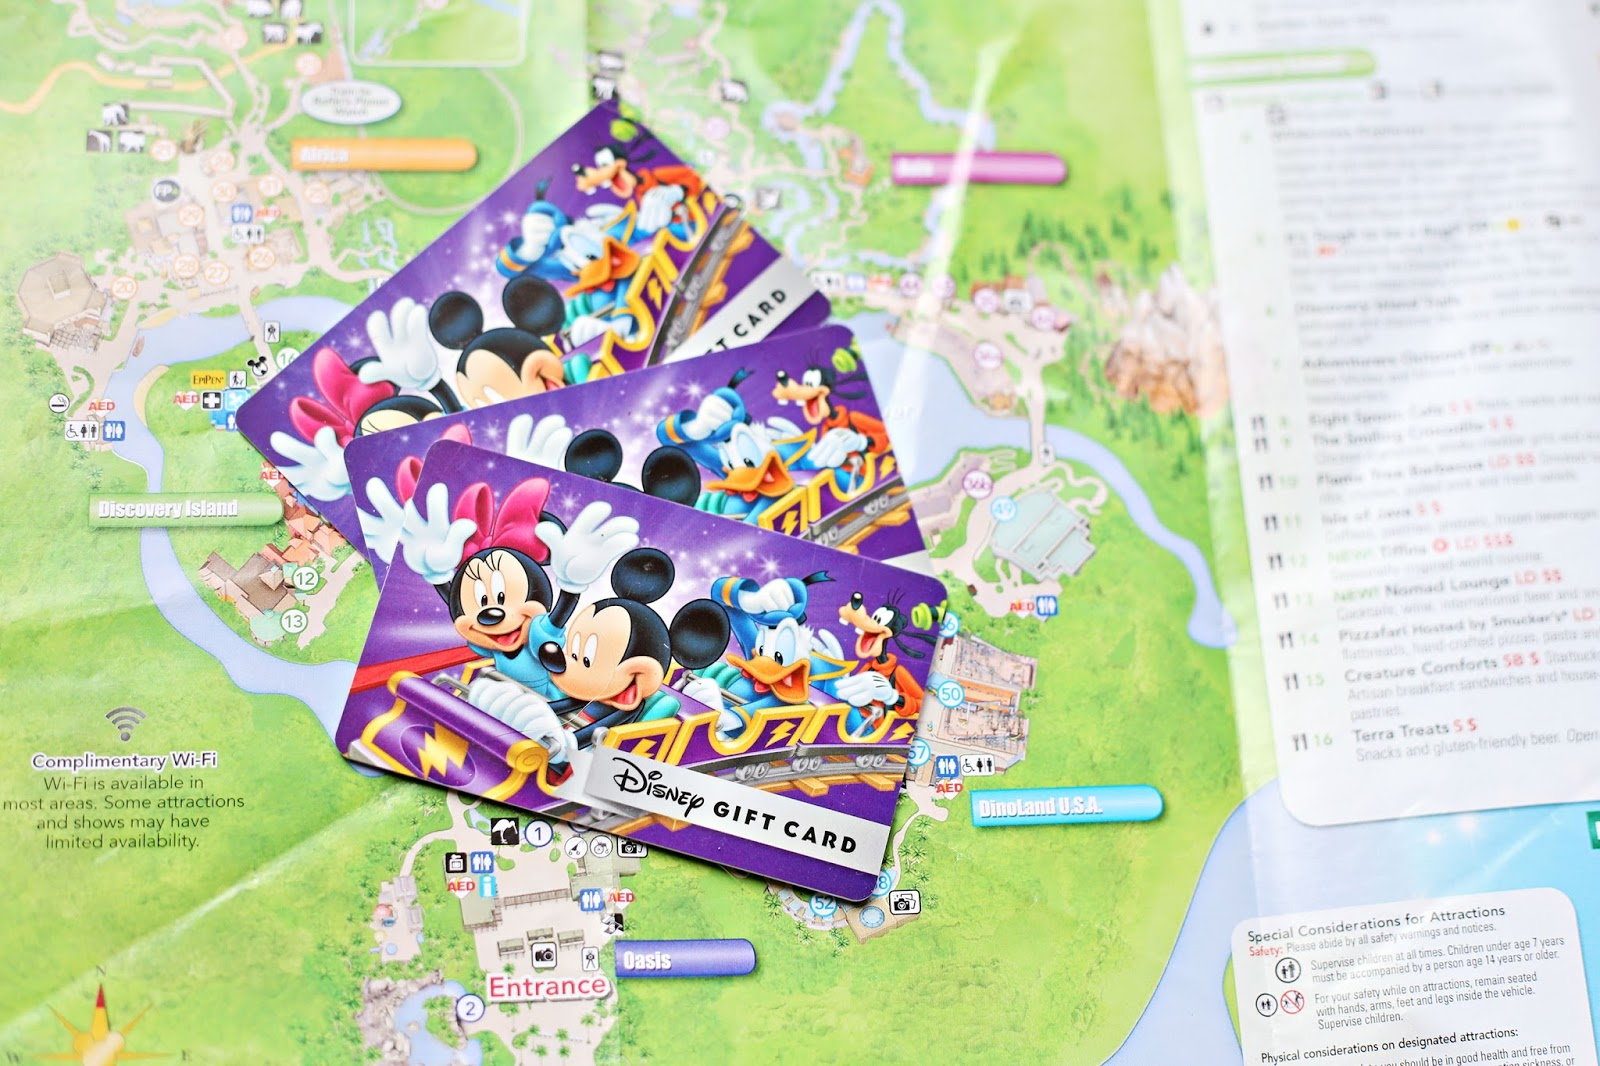 How I Made $65+ on Swagbucks in One Day - Saving for Disney